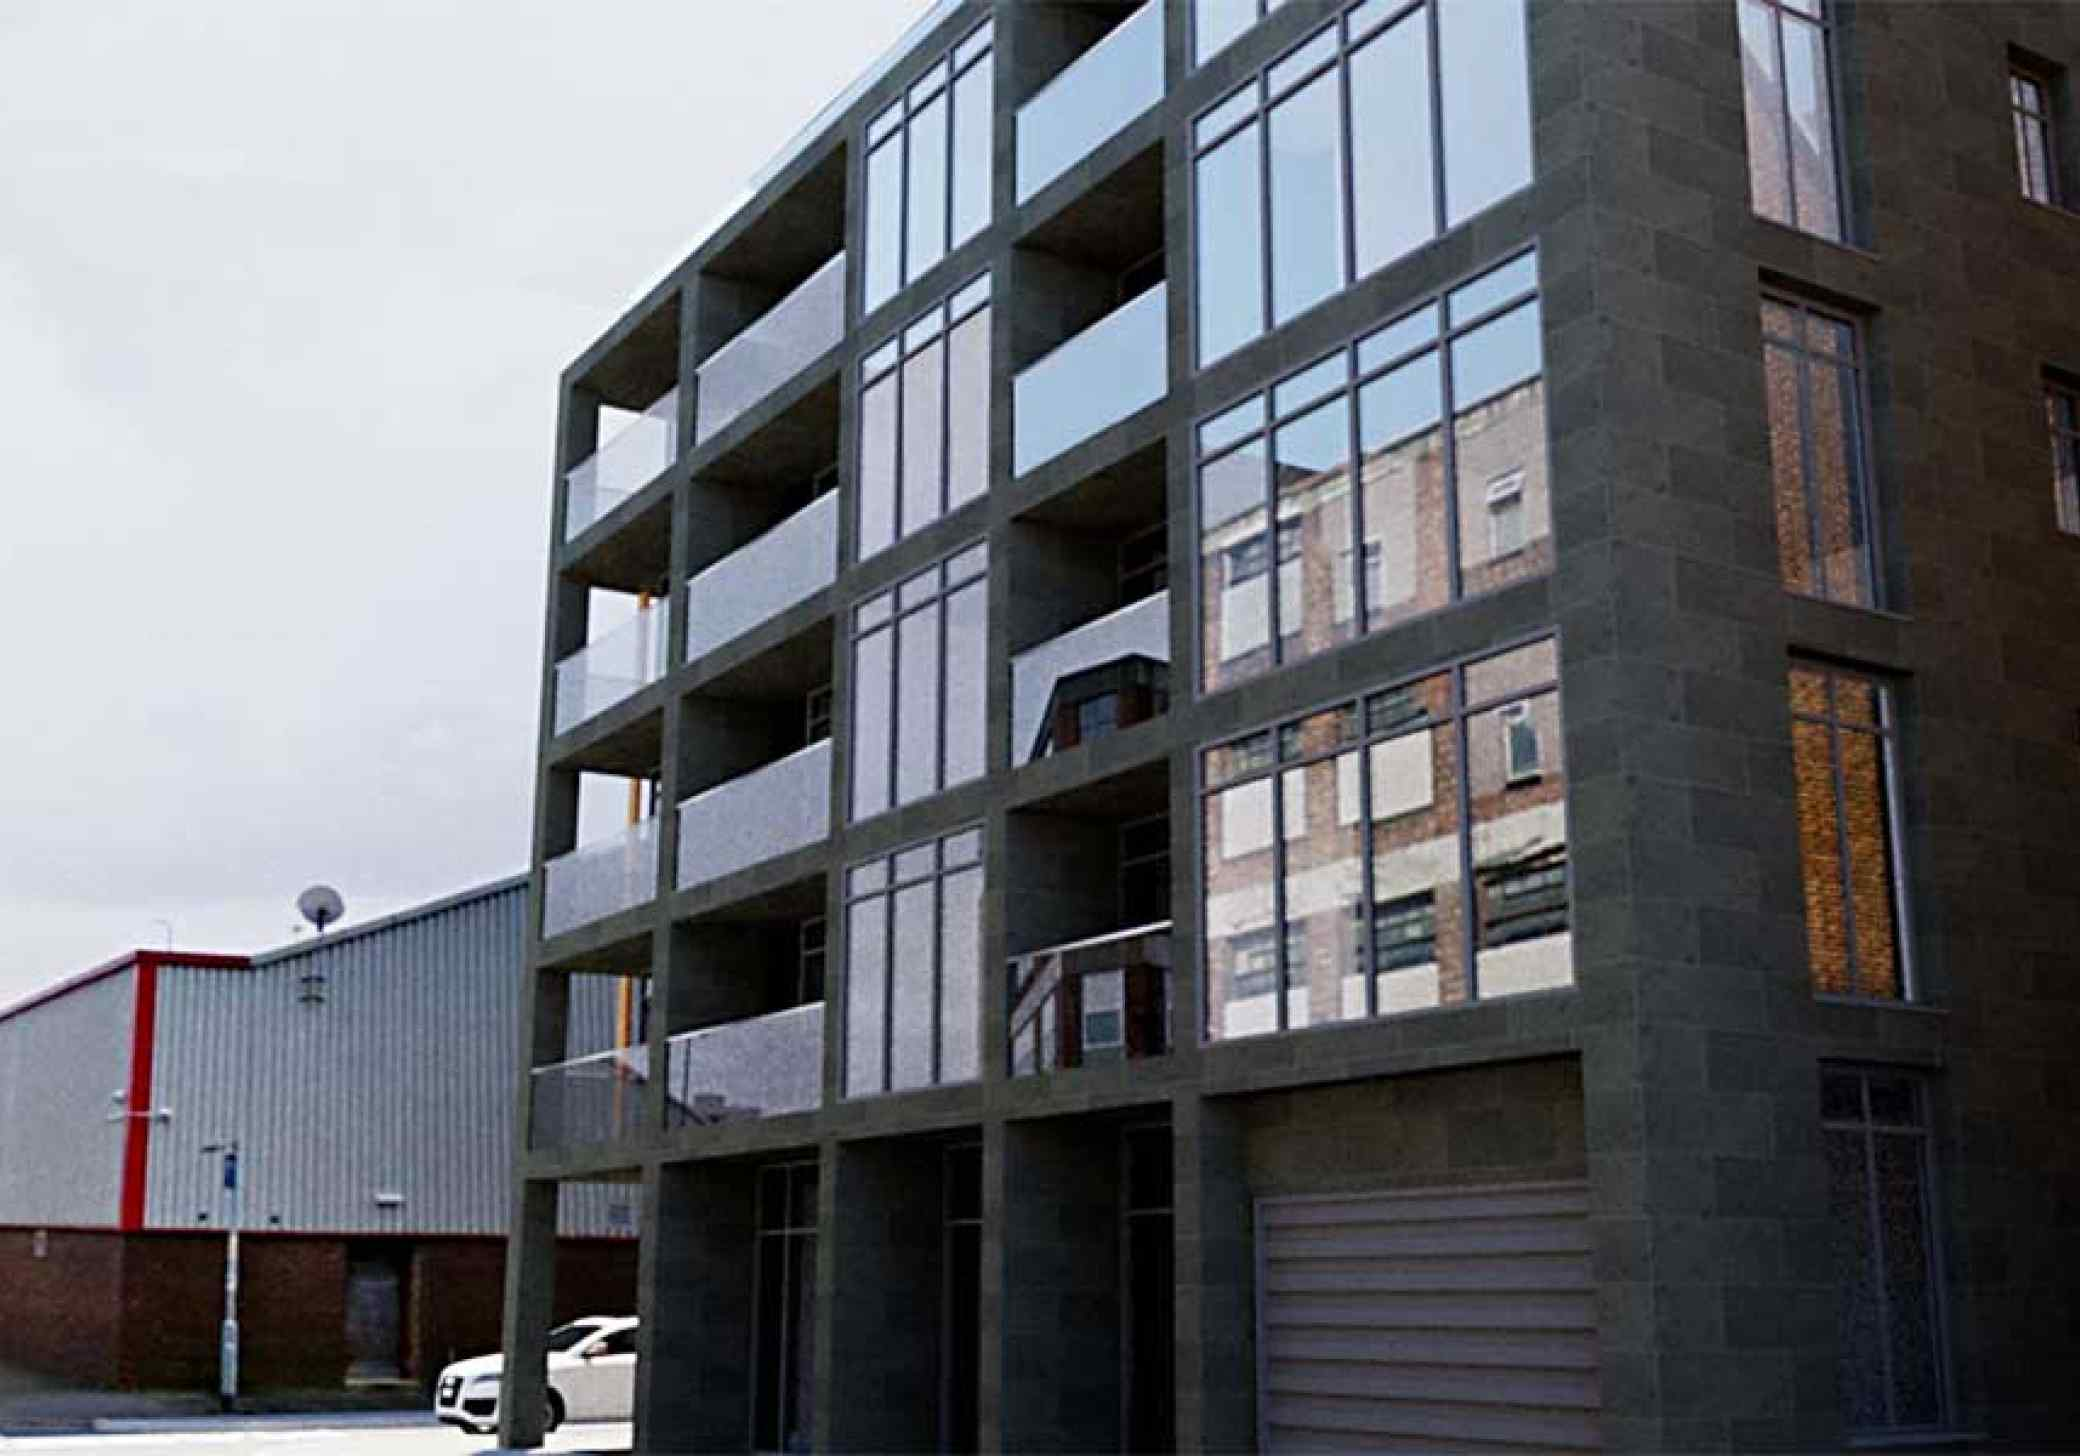 Ancoats Apartments additional illustration